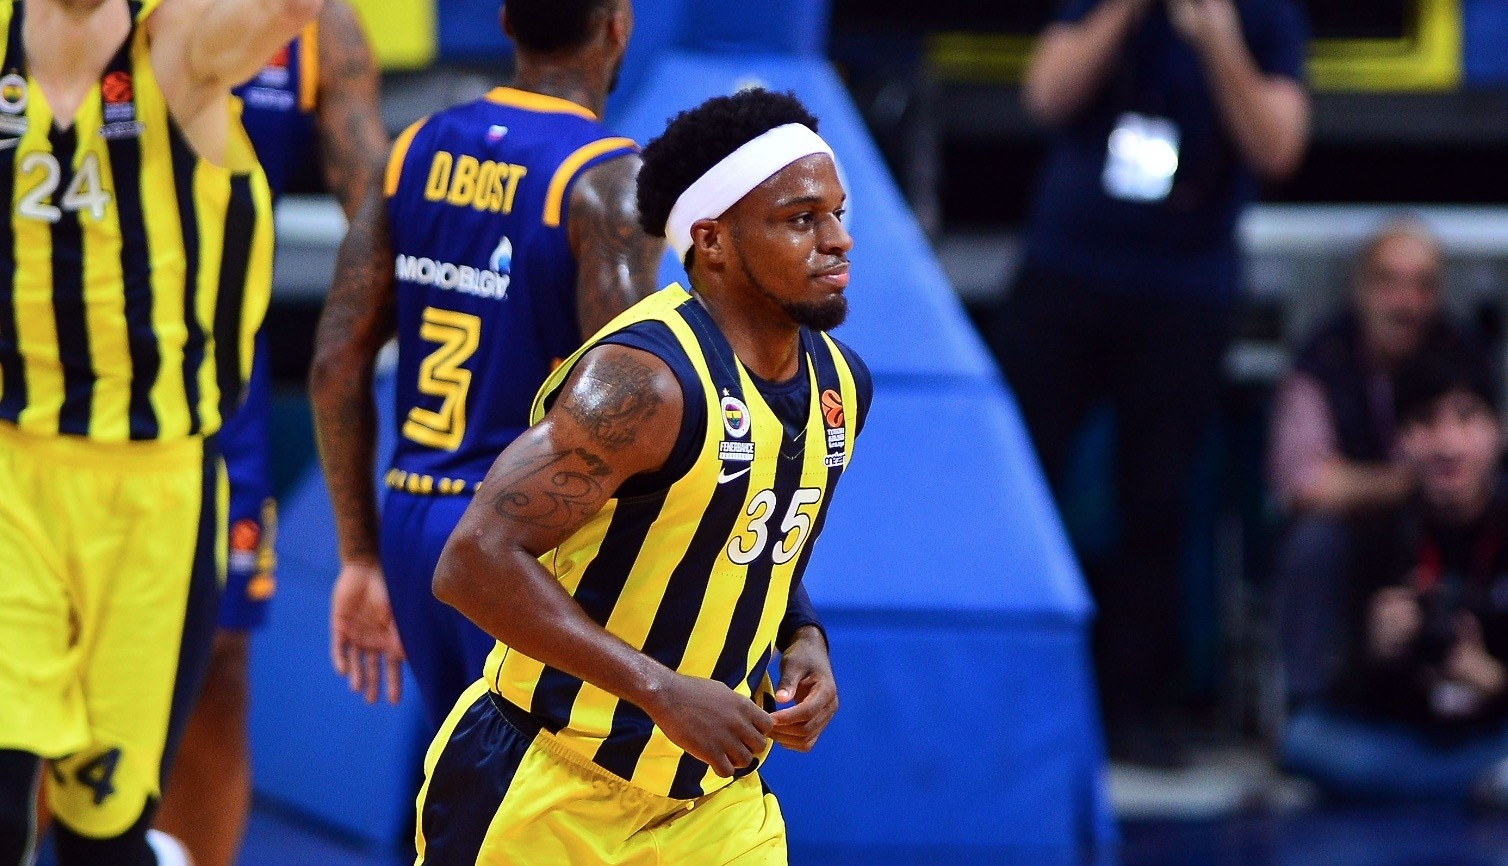 Ali Muhammed may be one of the smallest players in the Turkish Airlines Euroleague, but he is one of its most successful shooters ever.